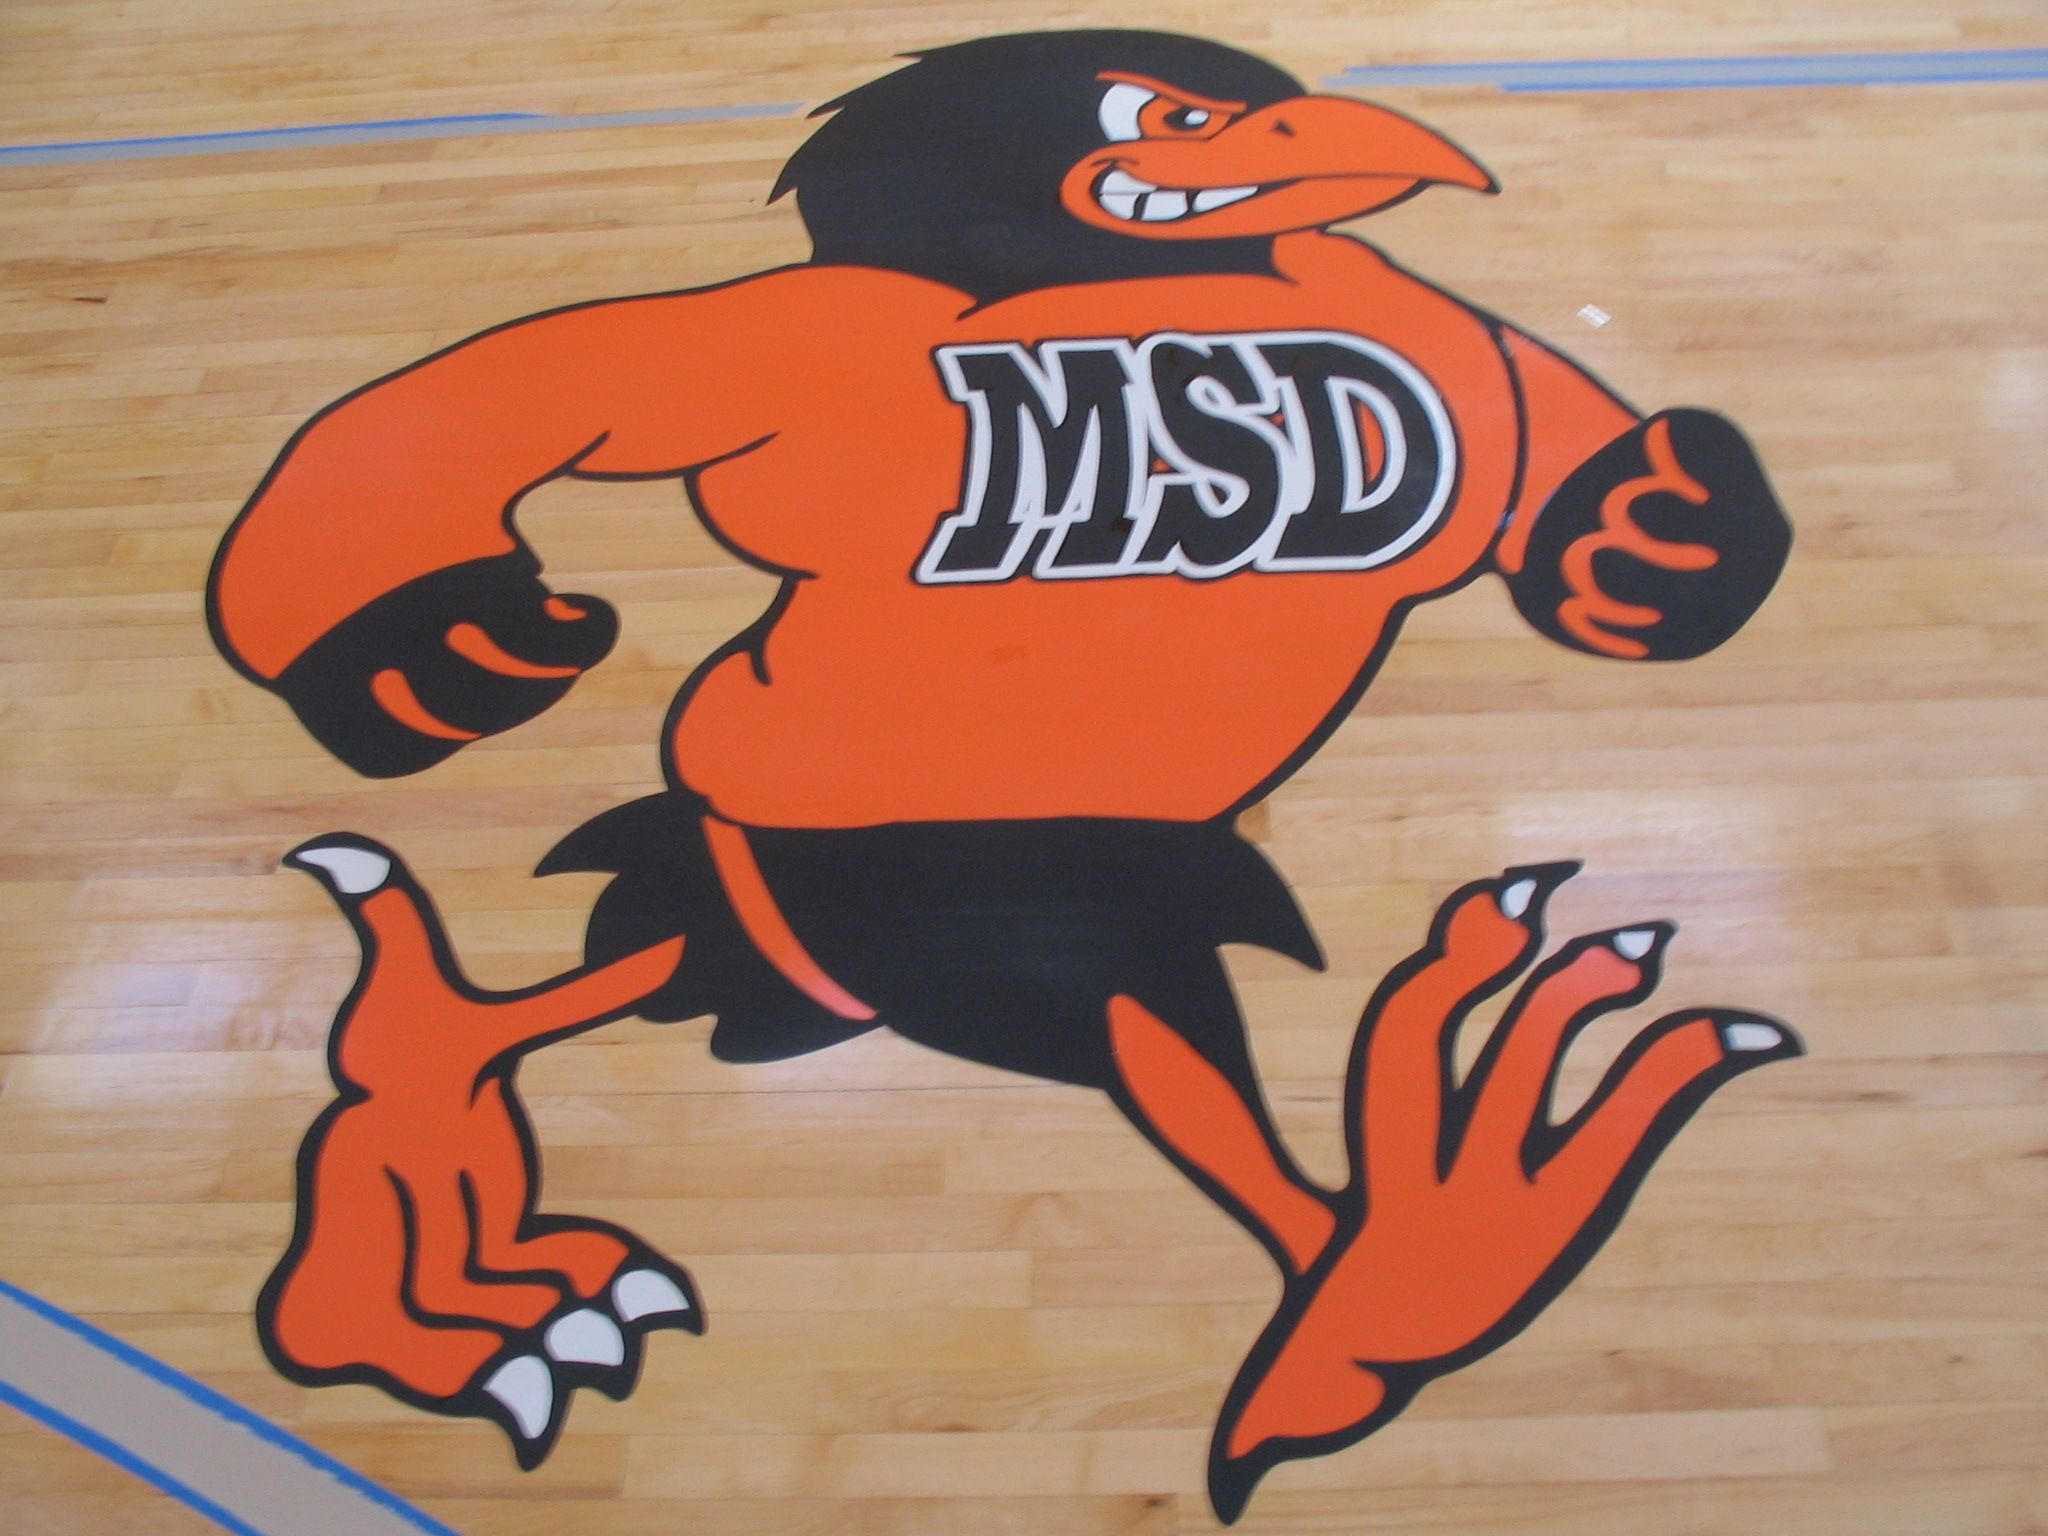 Brilliant Maryland School Of The Deaf Maryland Orioles Basketball Interior Design Ideas Helimdqseriescom